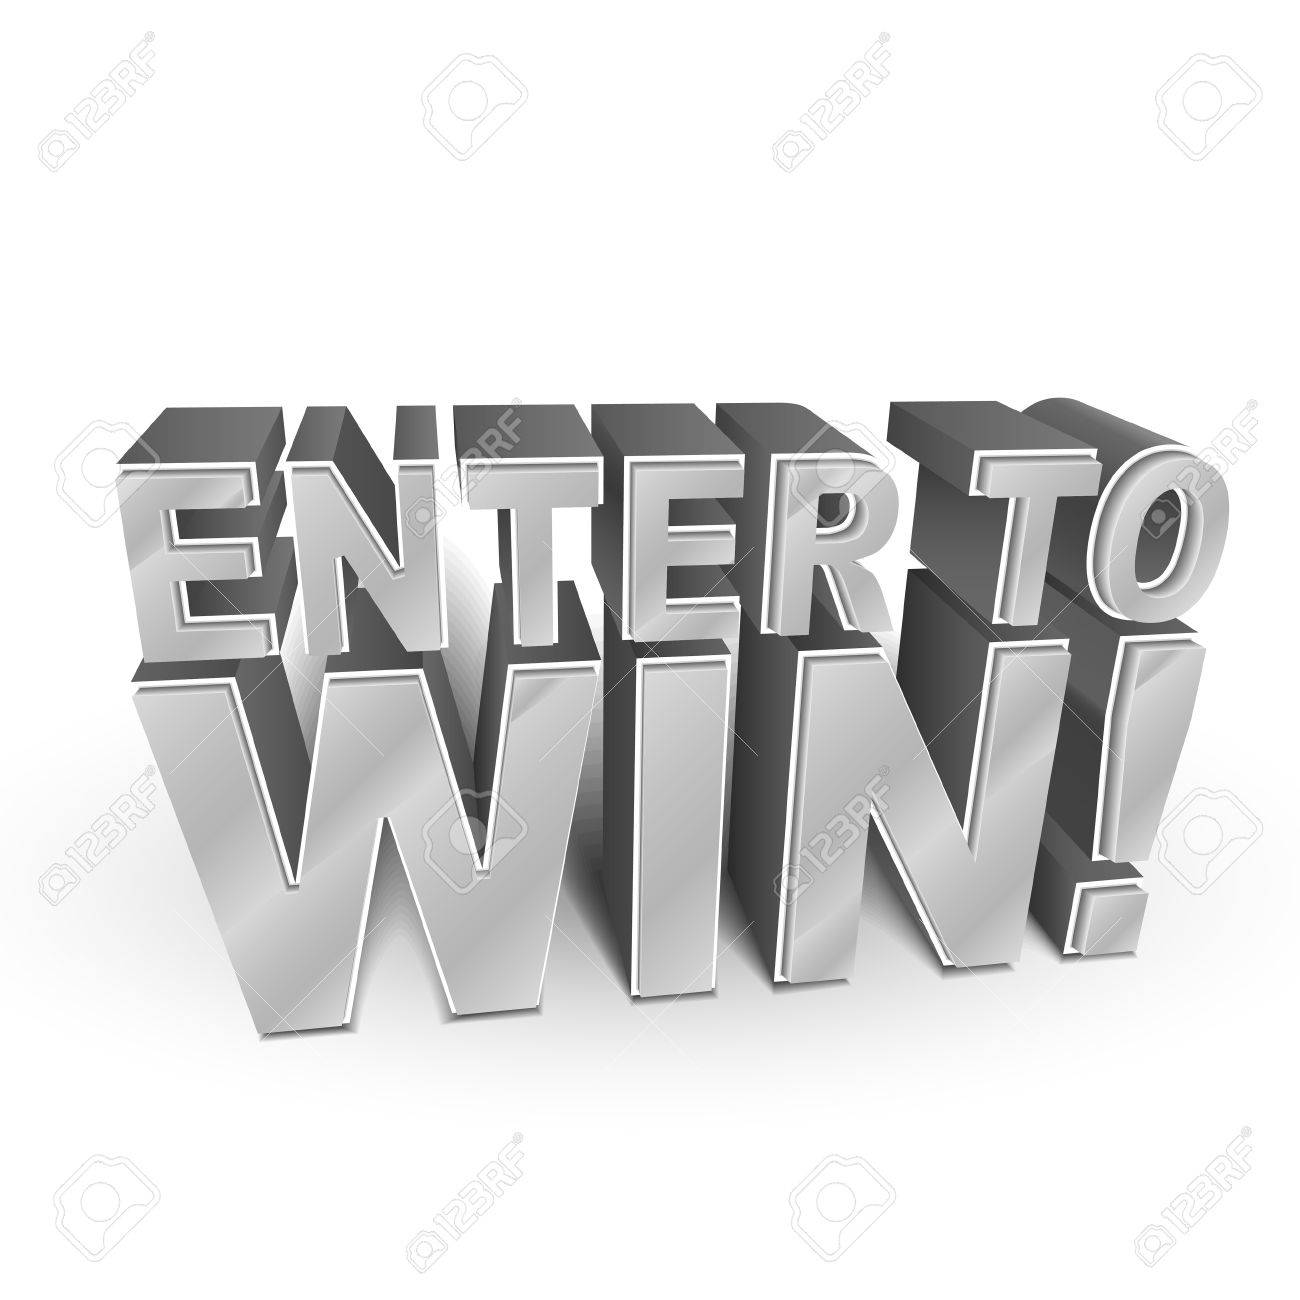 enter to win stock photos pictures royalty enter to win enter to win 3d illustration of the words enter to win isolated on white illustration